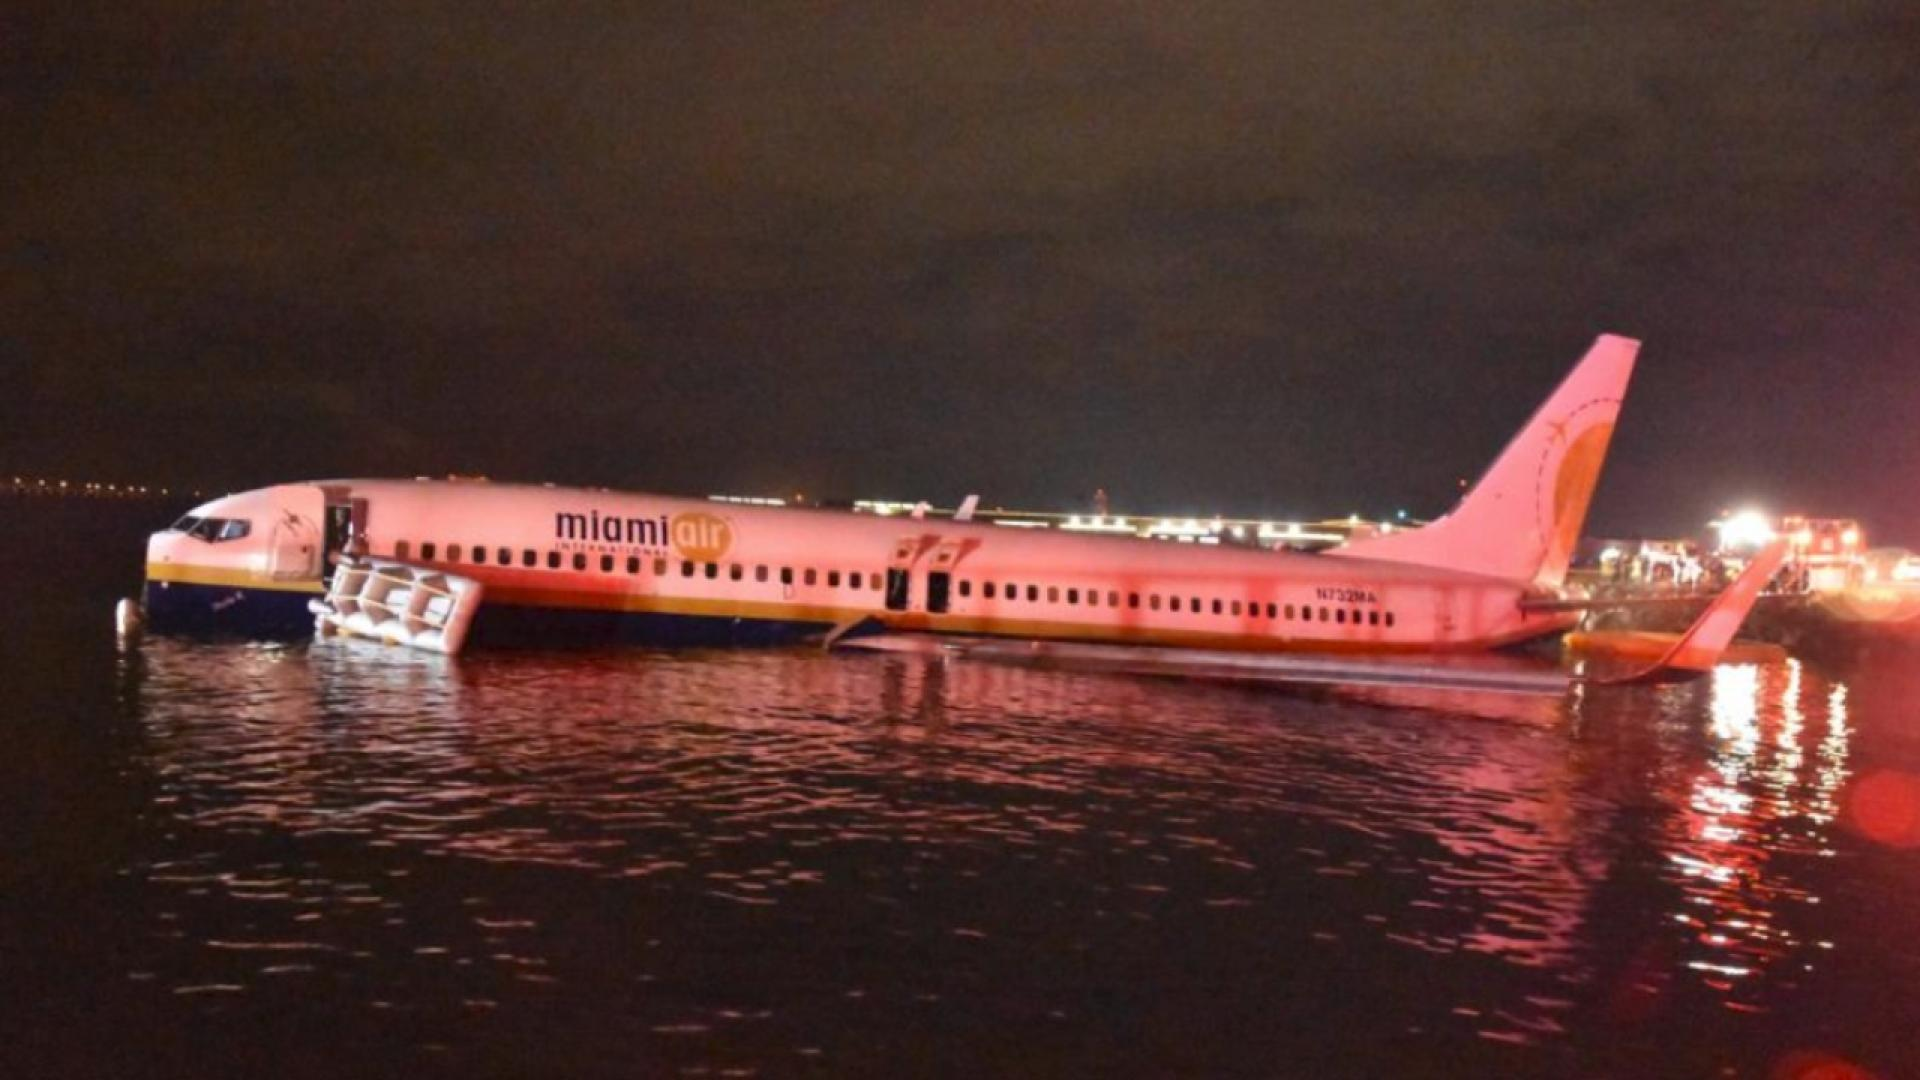 A plane crashed into the river in Florida on Friday night.